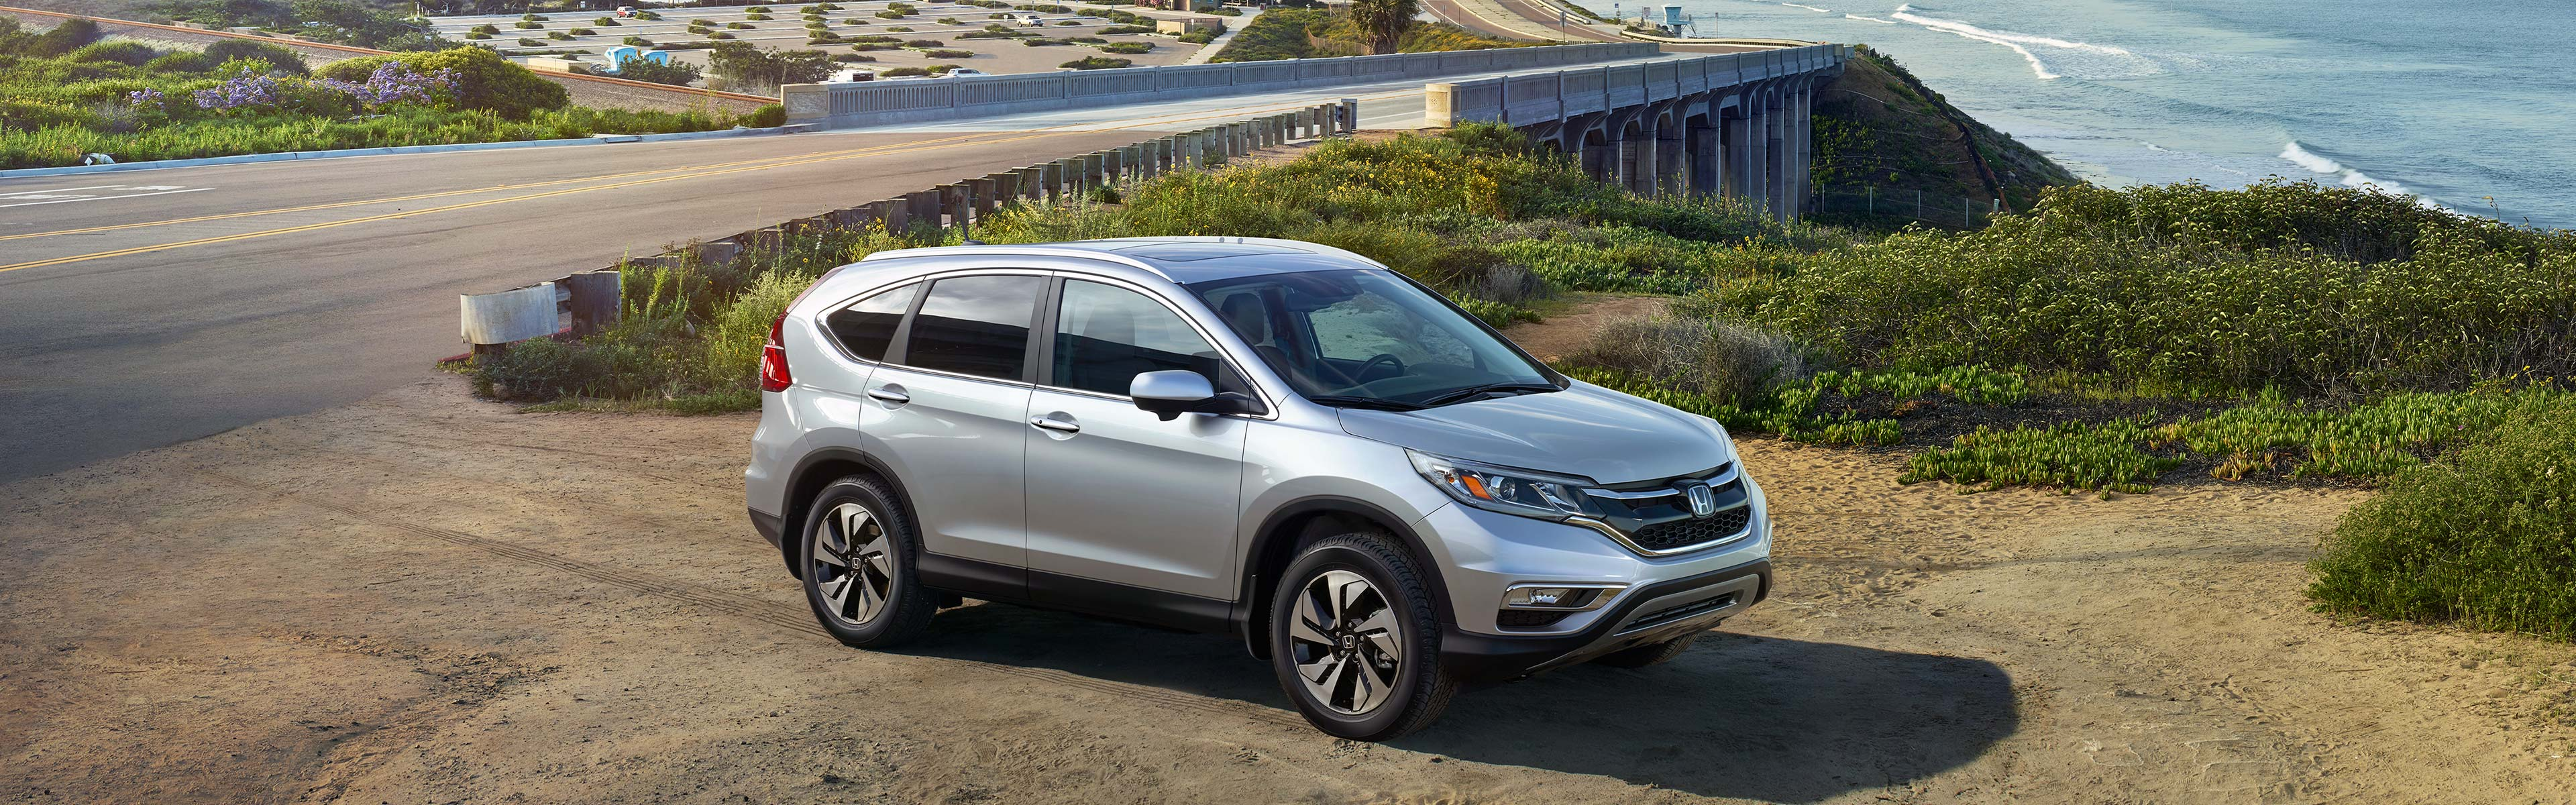 Image of a trip to the beach with the 2016 Honda CR-V